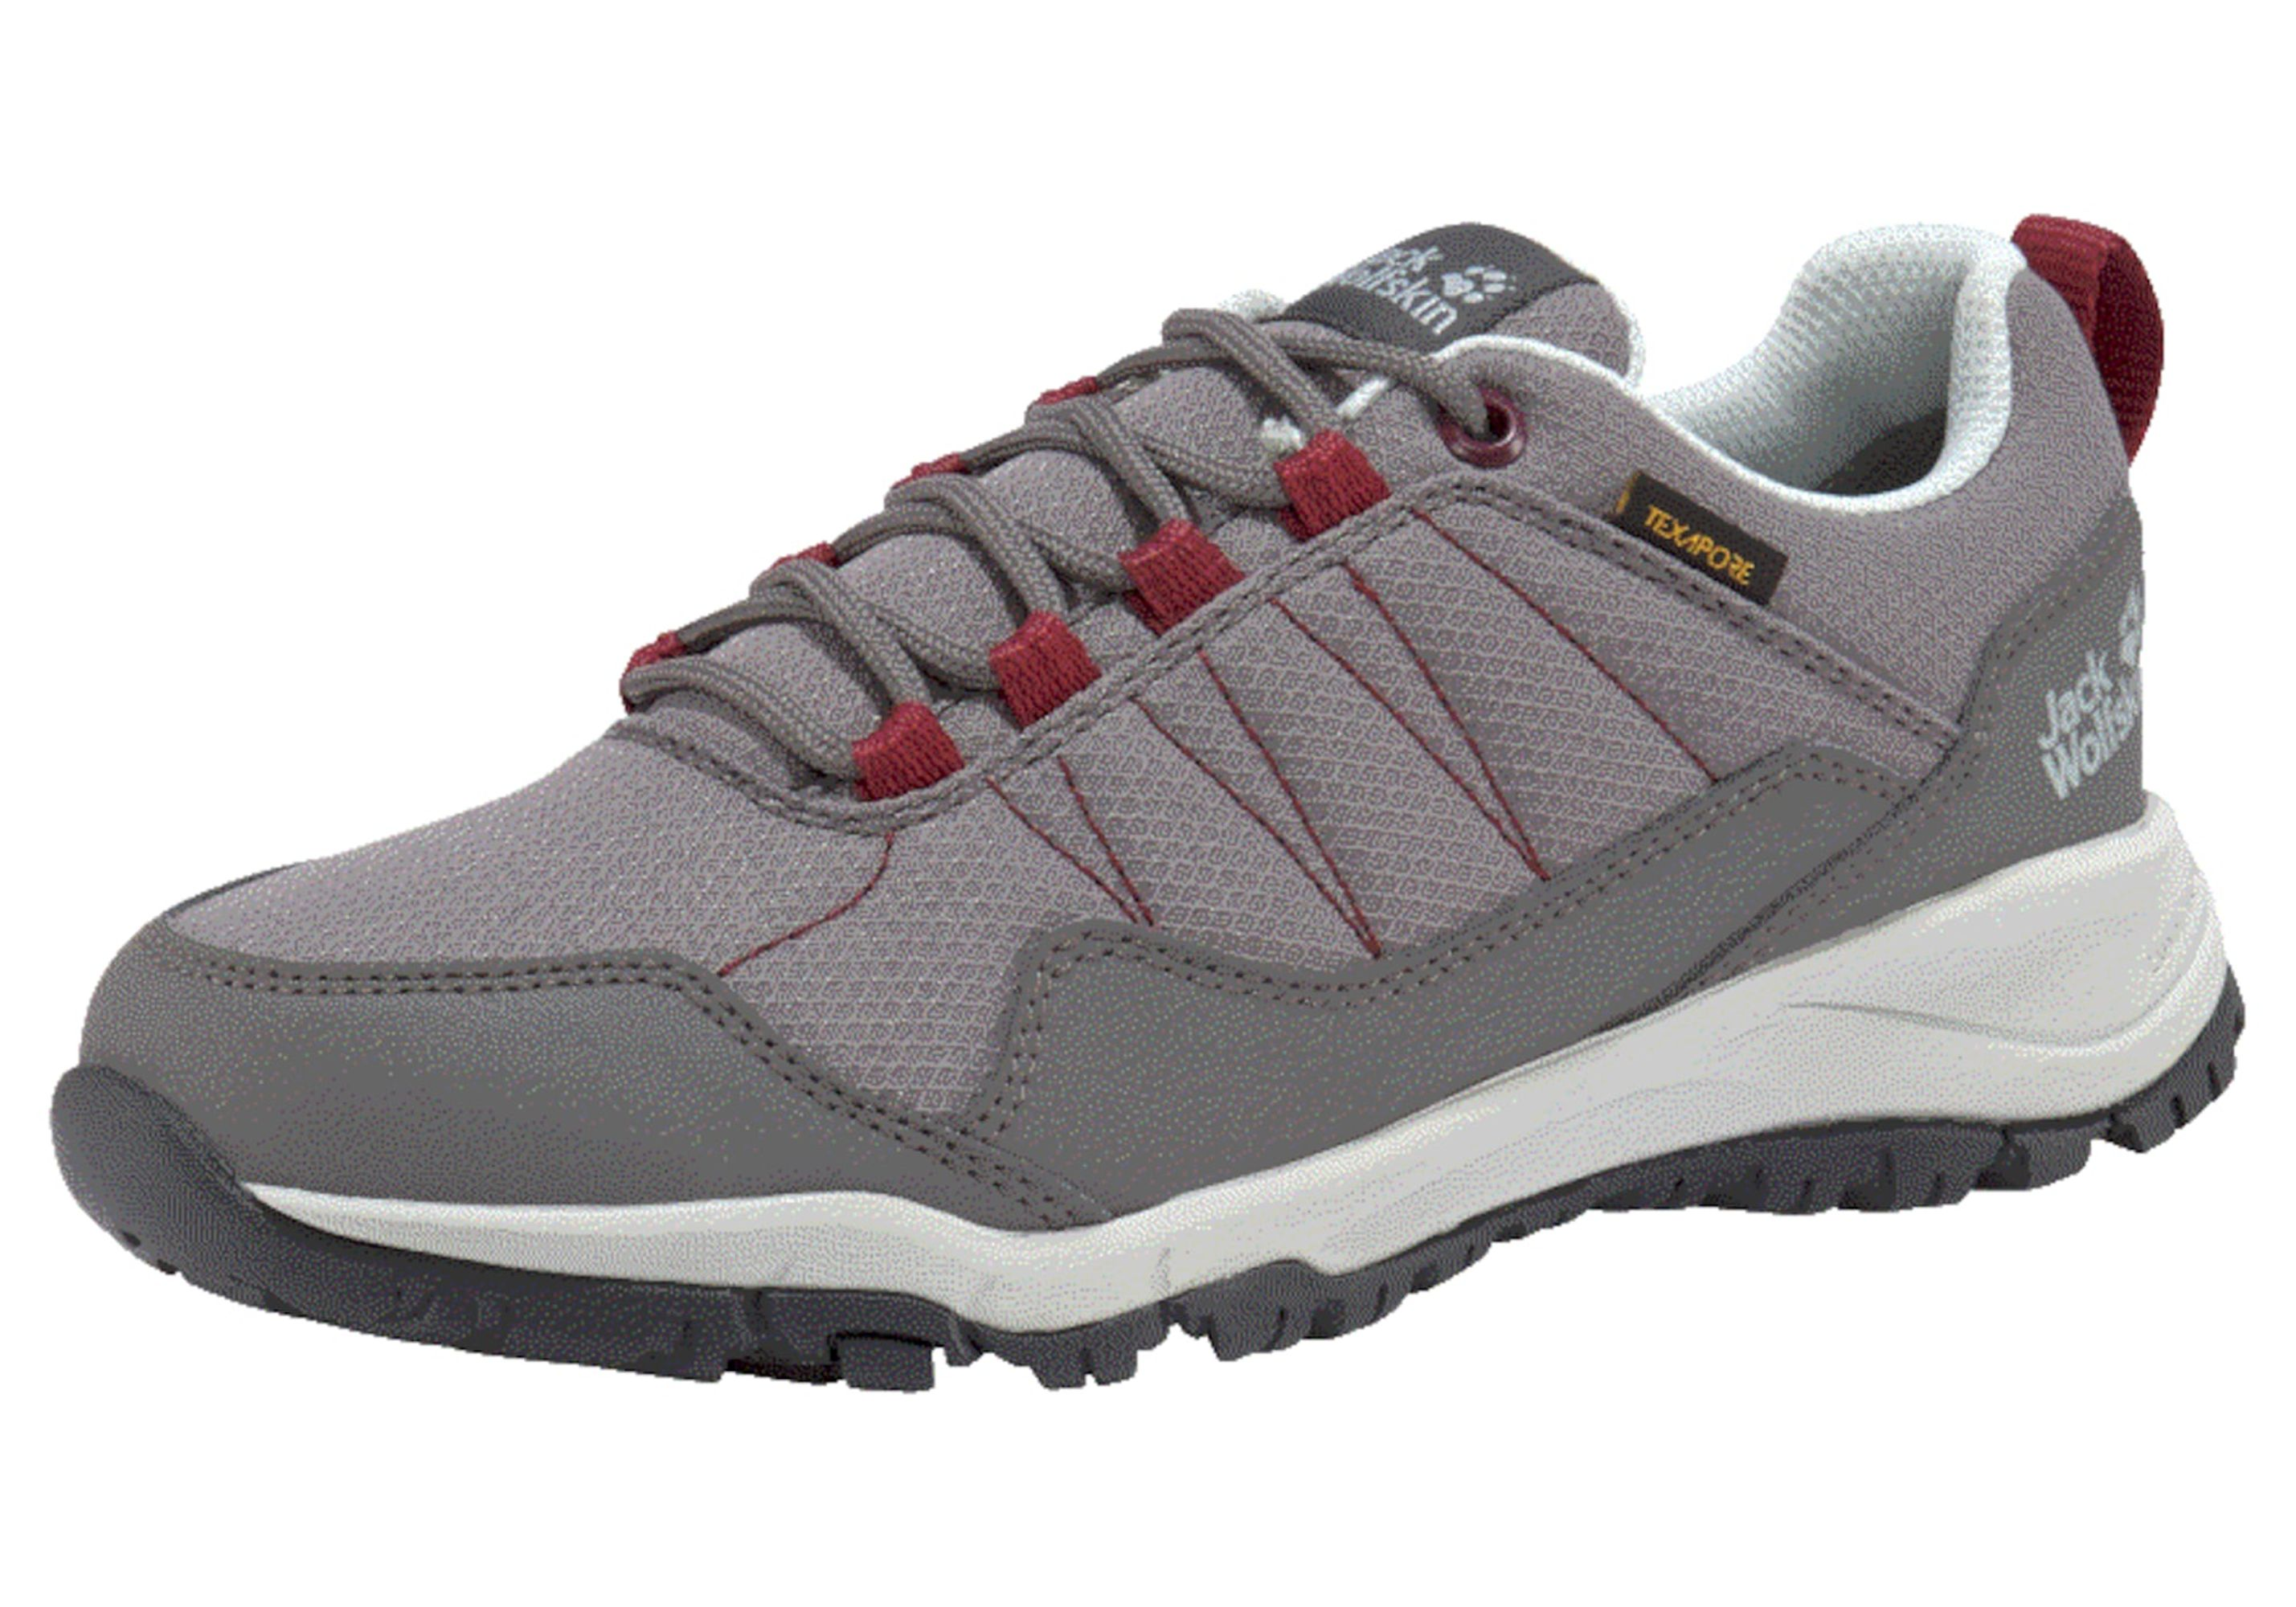 Outdoorschuh ´Maze Texapore Low W´